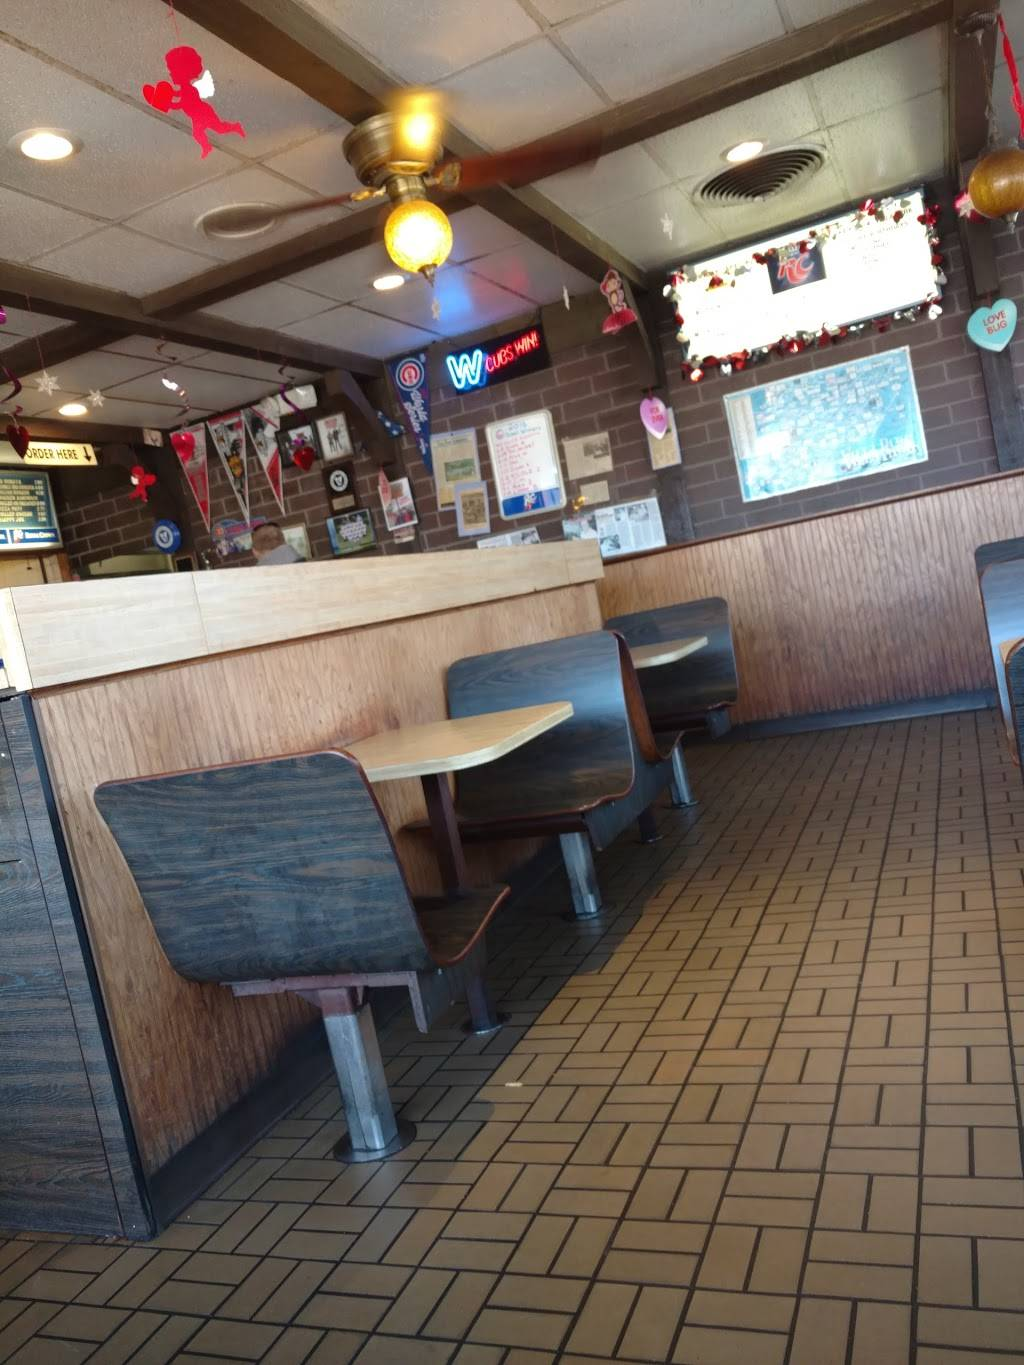 Mickeys Drive-In | restaurant | 105 St Charles Rd, Villa Park, IL 60181, USA | 6305308160 OR +1 630-530-8160